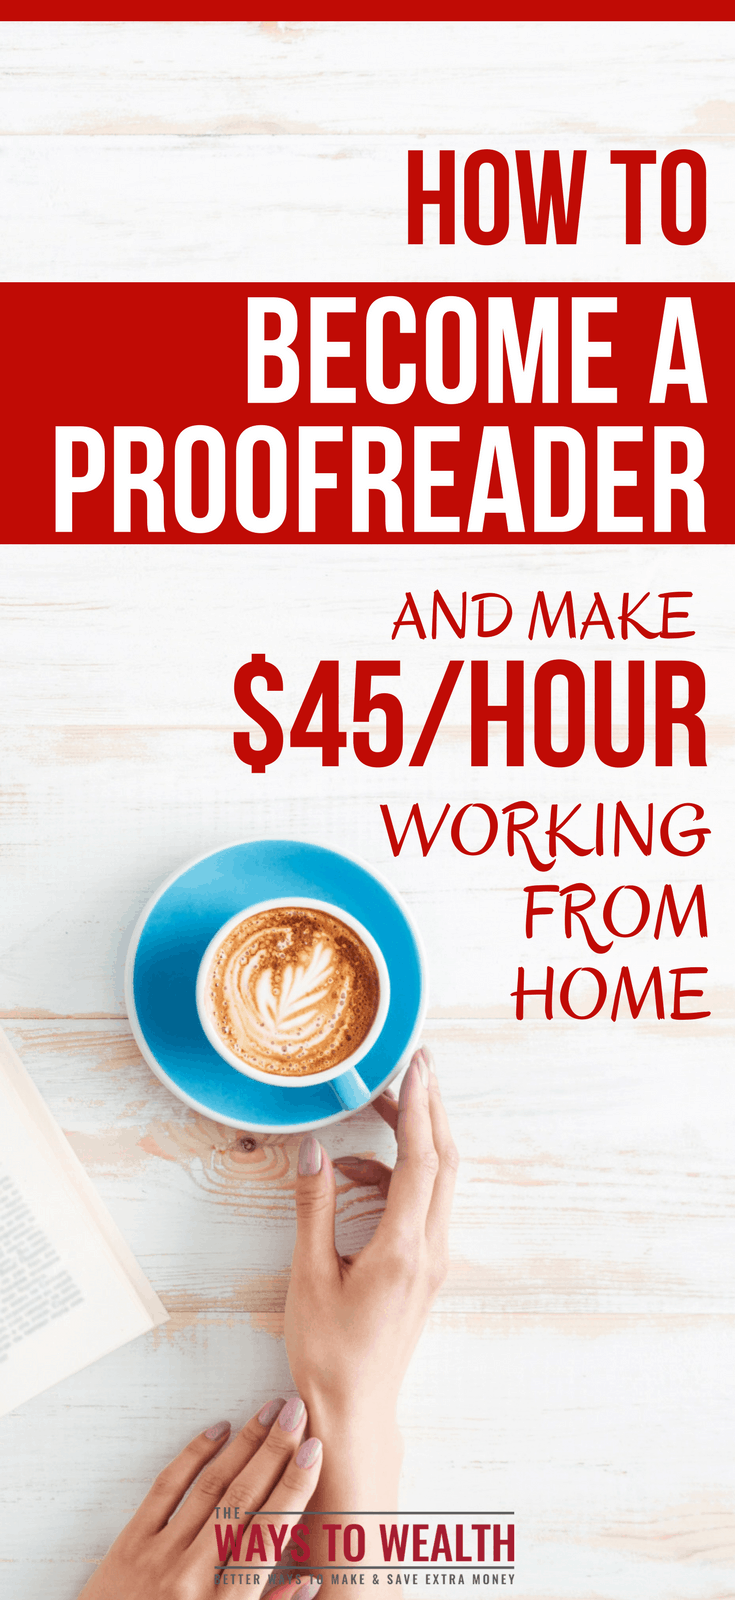 How to Earn $45/Hour Working From Home as a Proofreader proofreading jobs from home | proofreading jobs from home court reporter | proofreading jobs from home beginner | work from home careers get started #wahm #workfromhome #extraincome